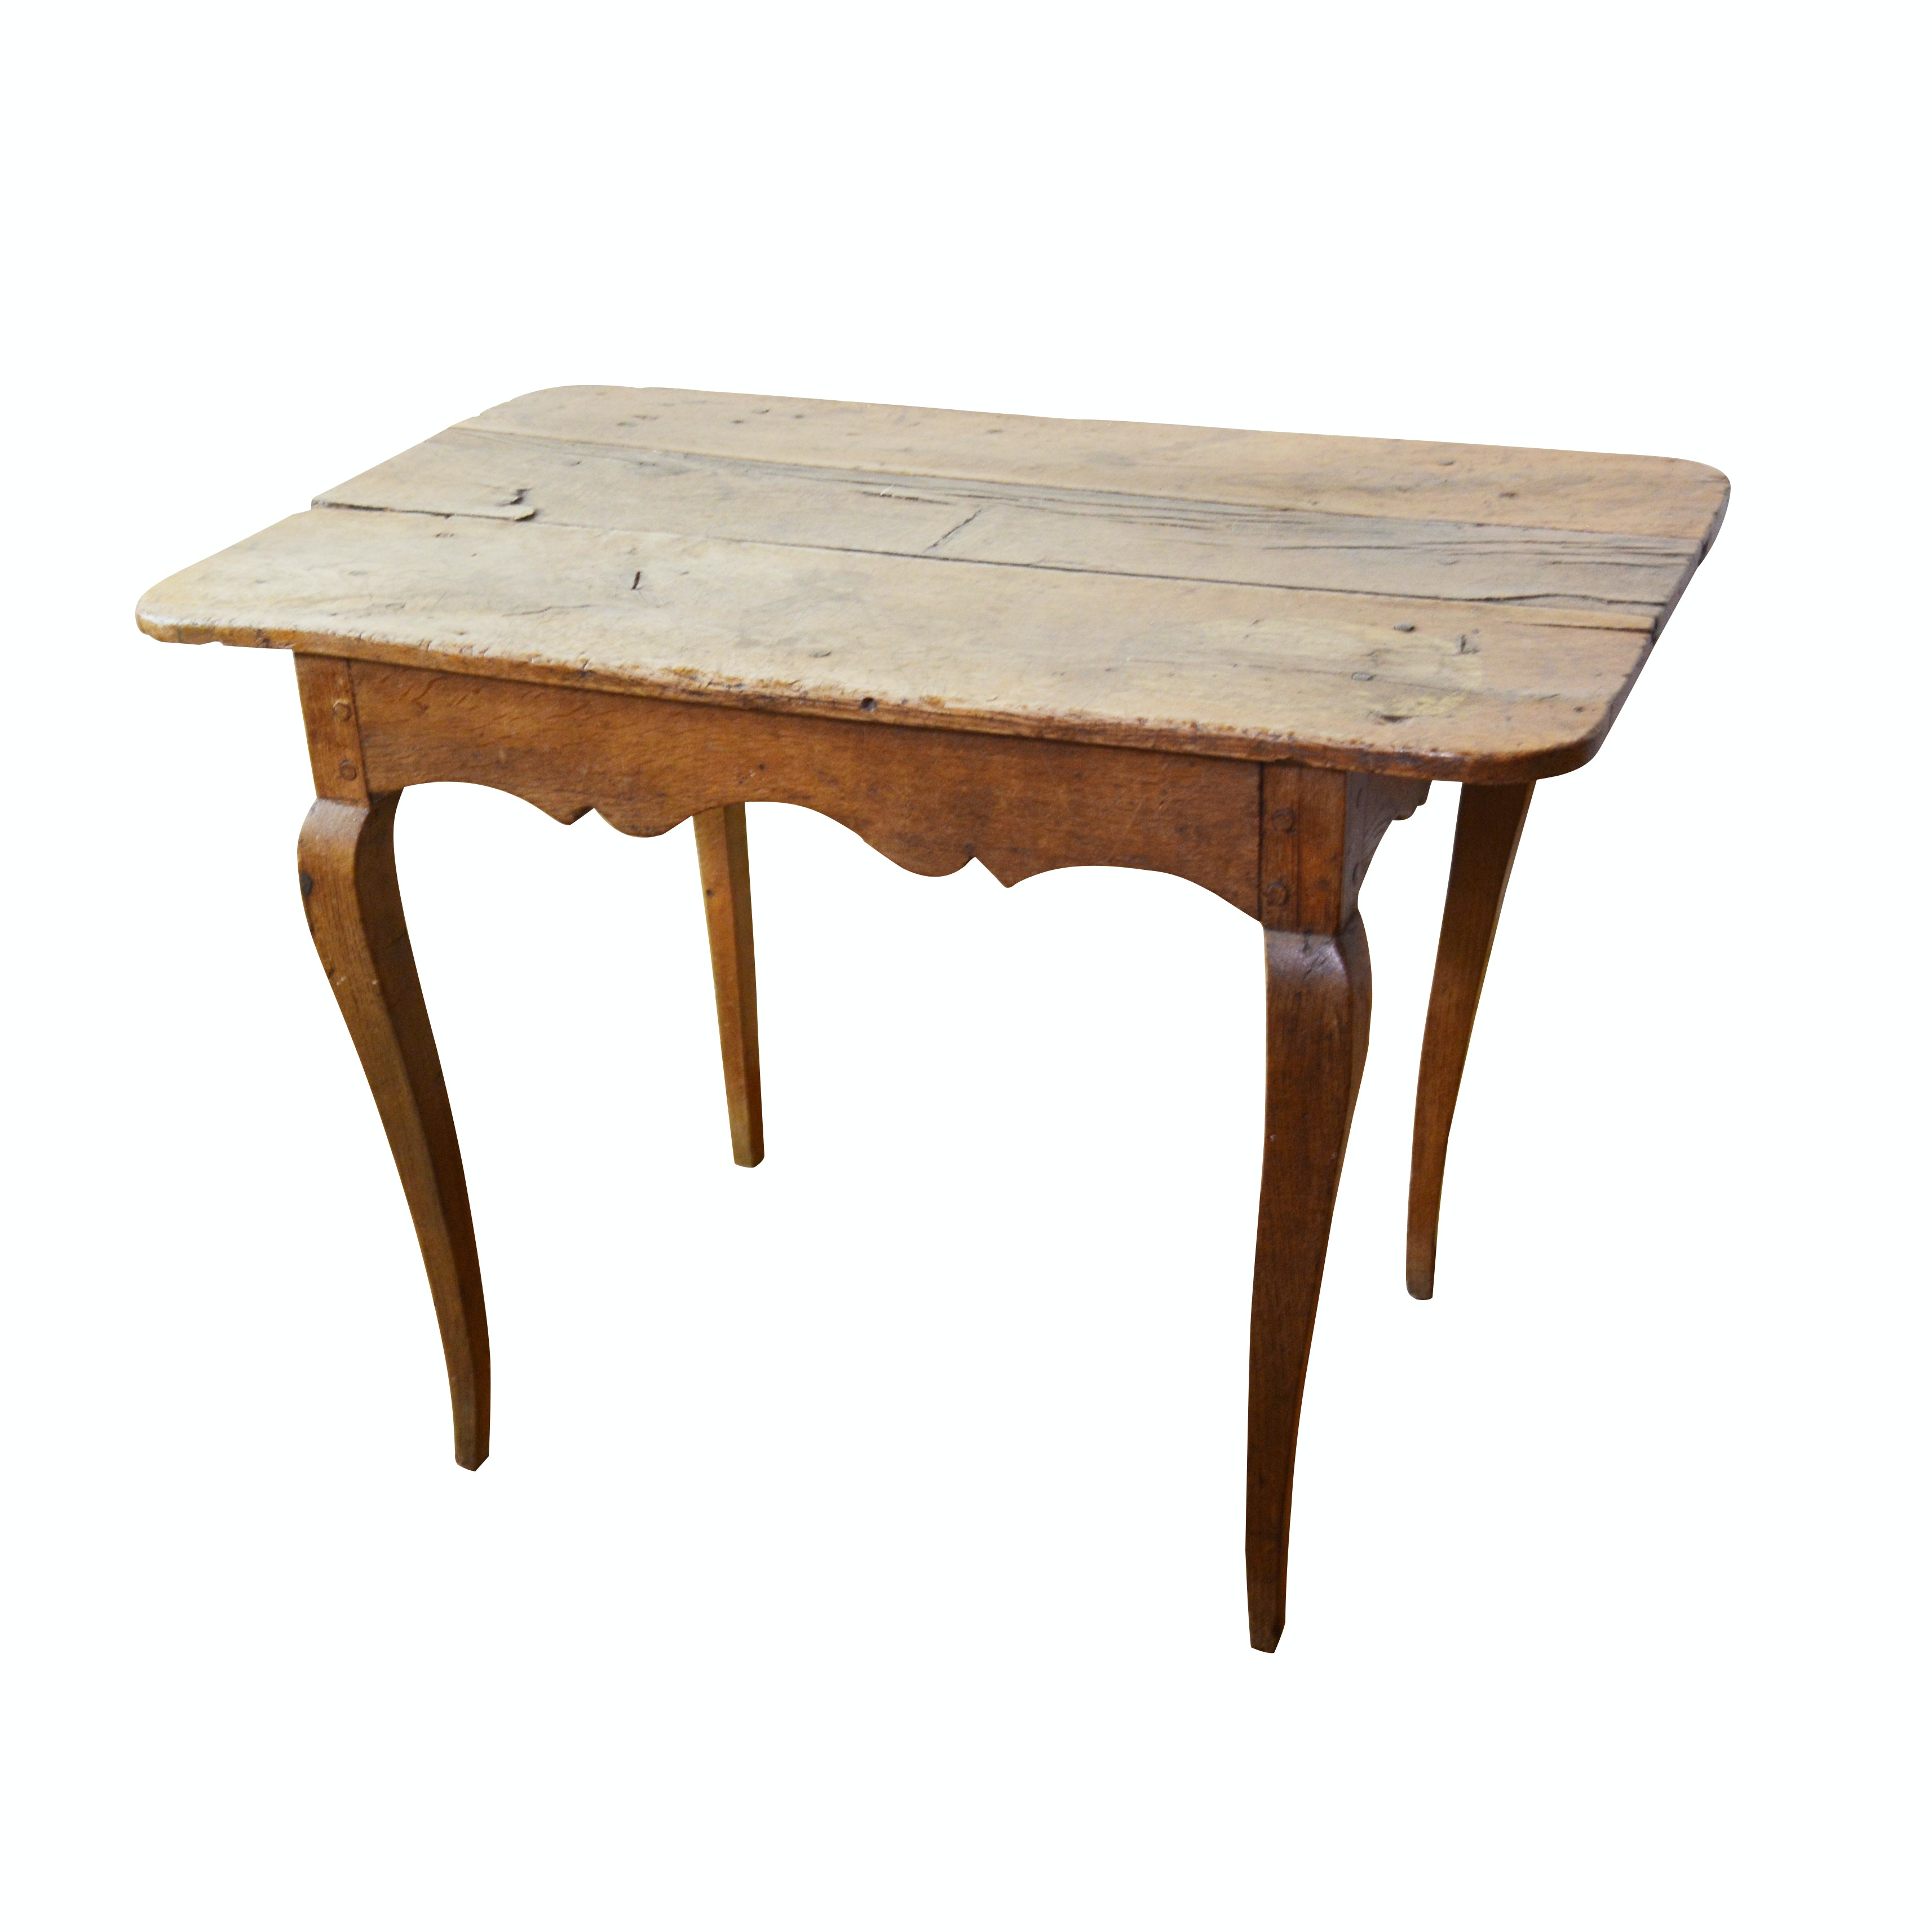 French Provincial Louis XV Style Oak Table, Mid 19th Century